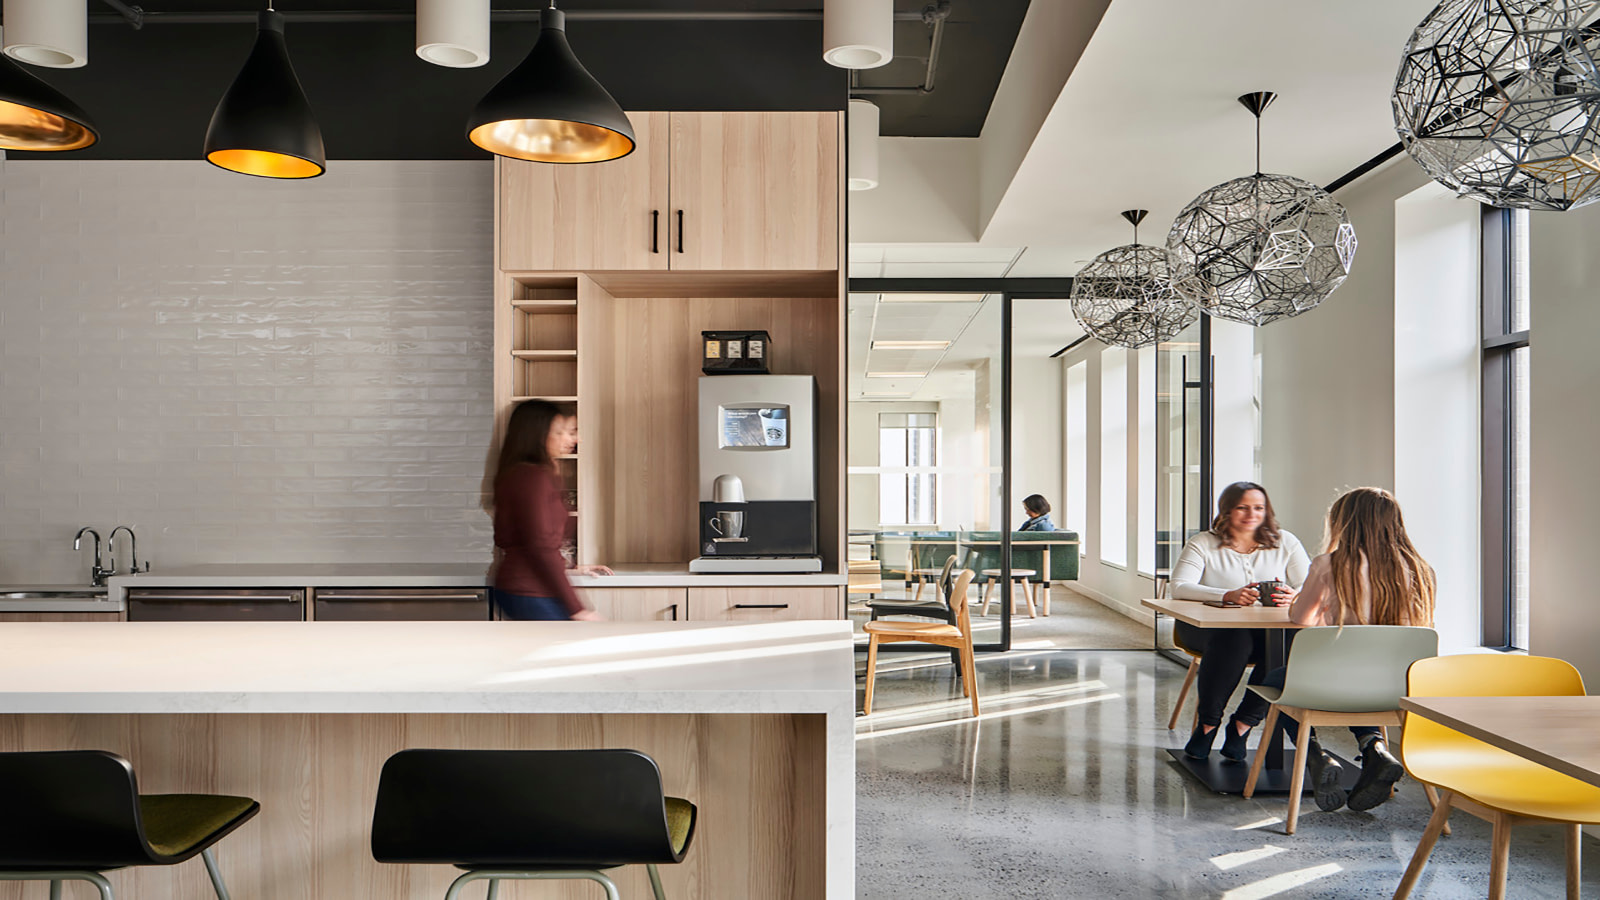 A break and cafe area at OMERS' Toronto location.